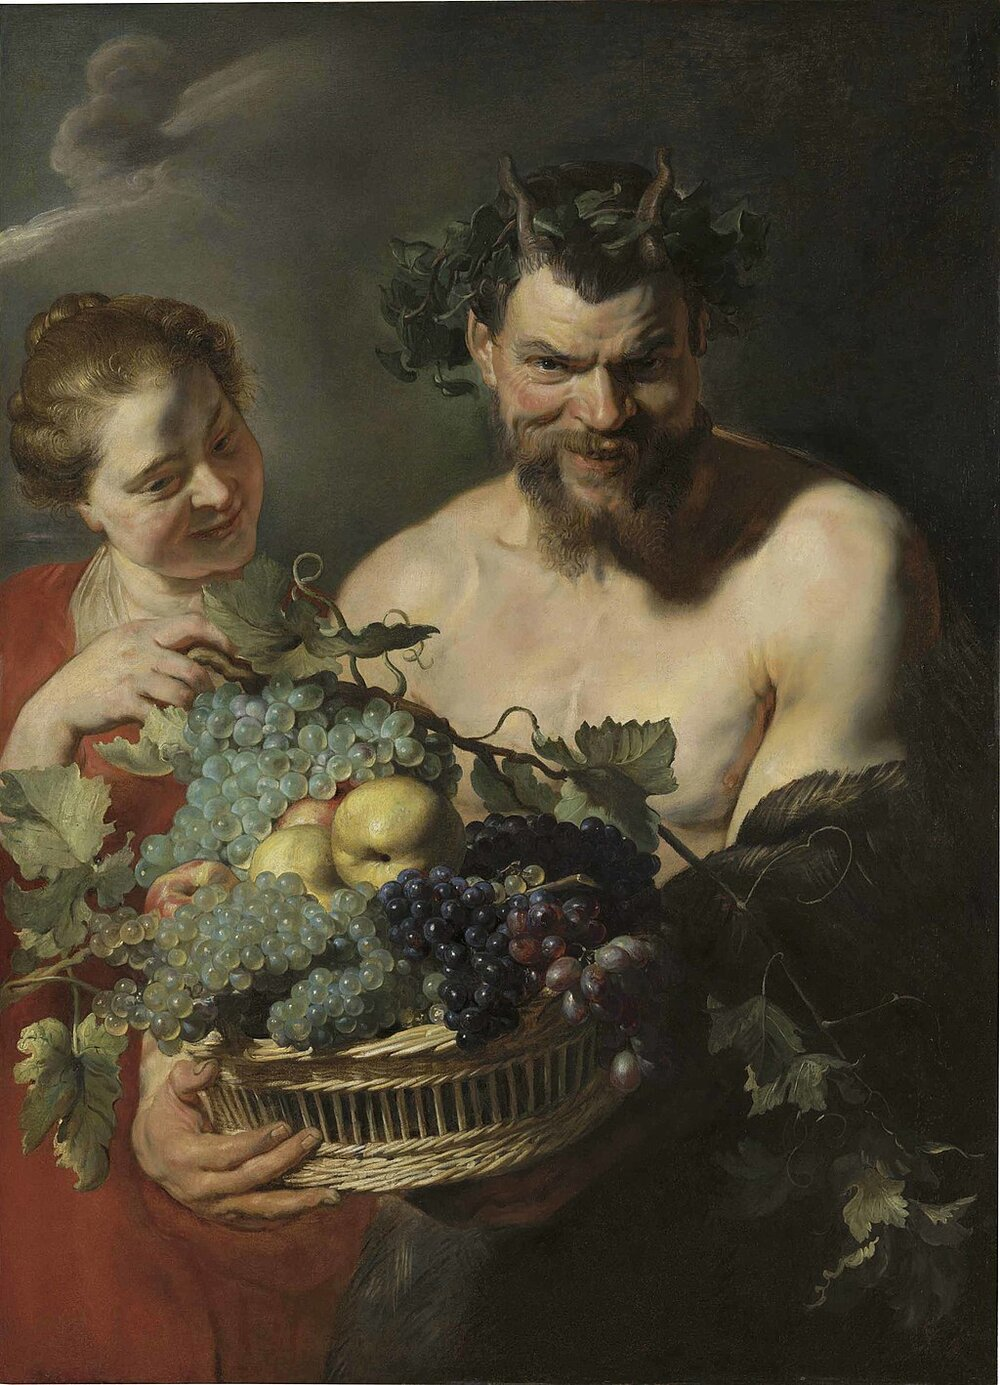 A Satyr holding a Basket of Grapes and Quinces with a Nymph, Рубенс, 1620. ©WIKIMEDIA COMMONS